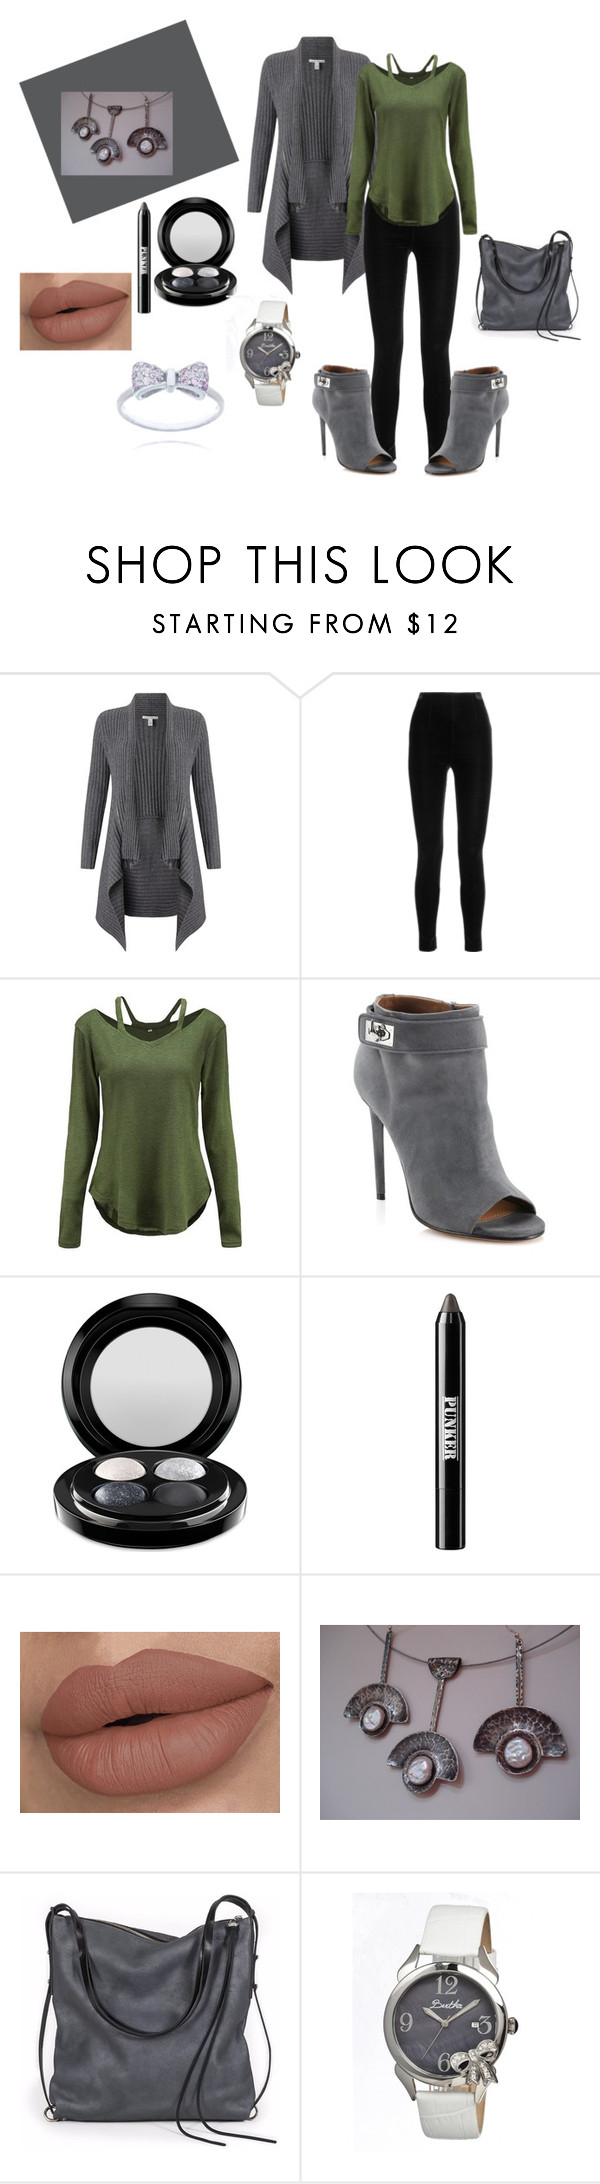 AnnaRecycle by bamagirl0320 on Polyvore featuring Autumn Cashmere, Balmain, Givenchy, Ina Kent, Bertha, MAC Cosmetics and Ardency Inn